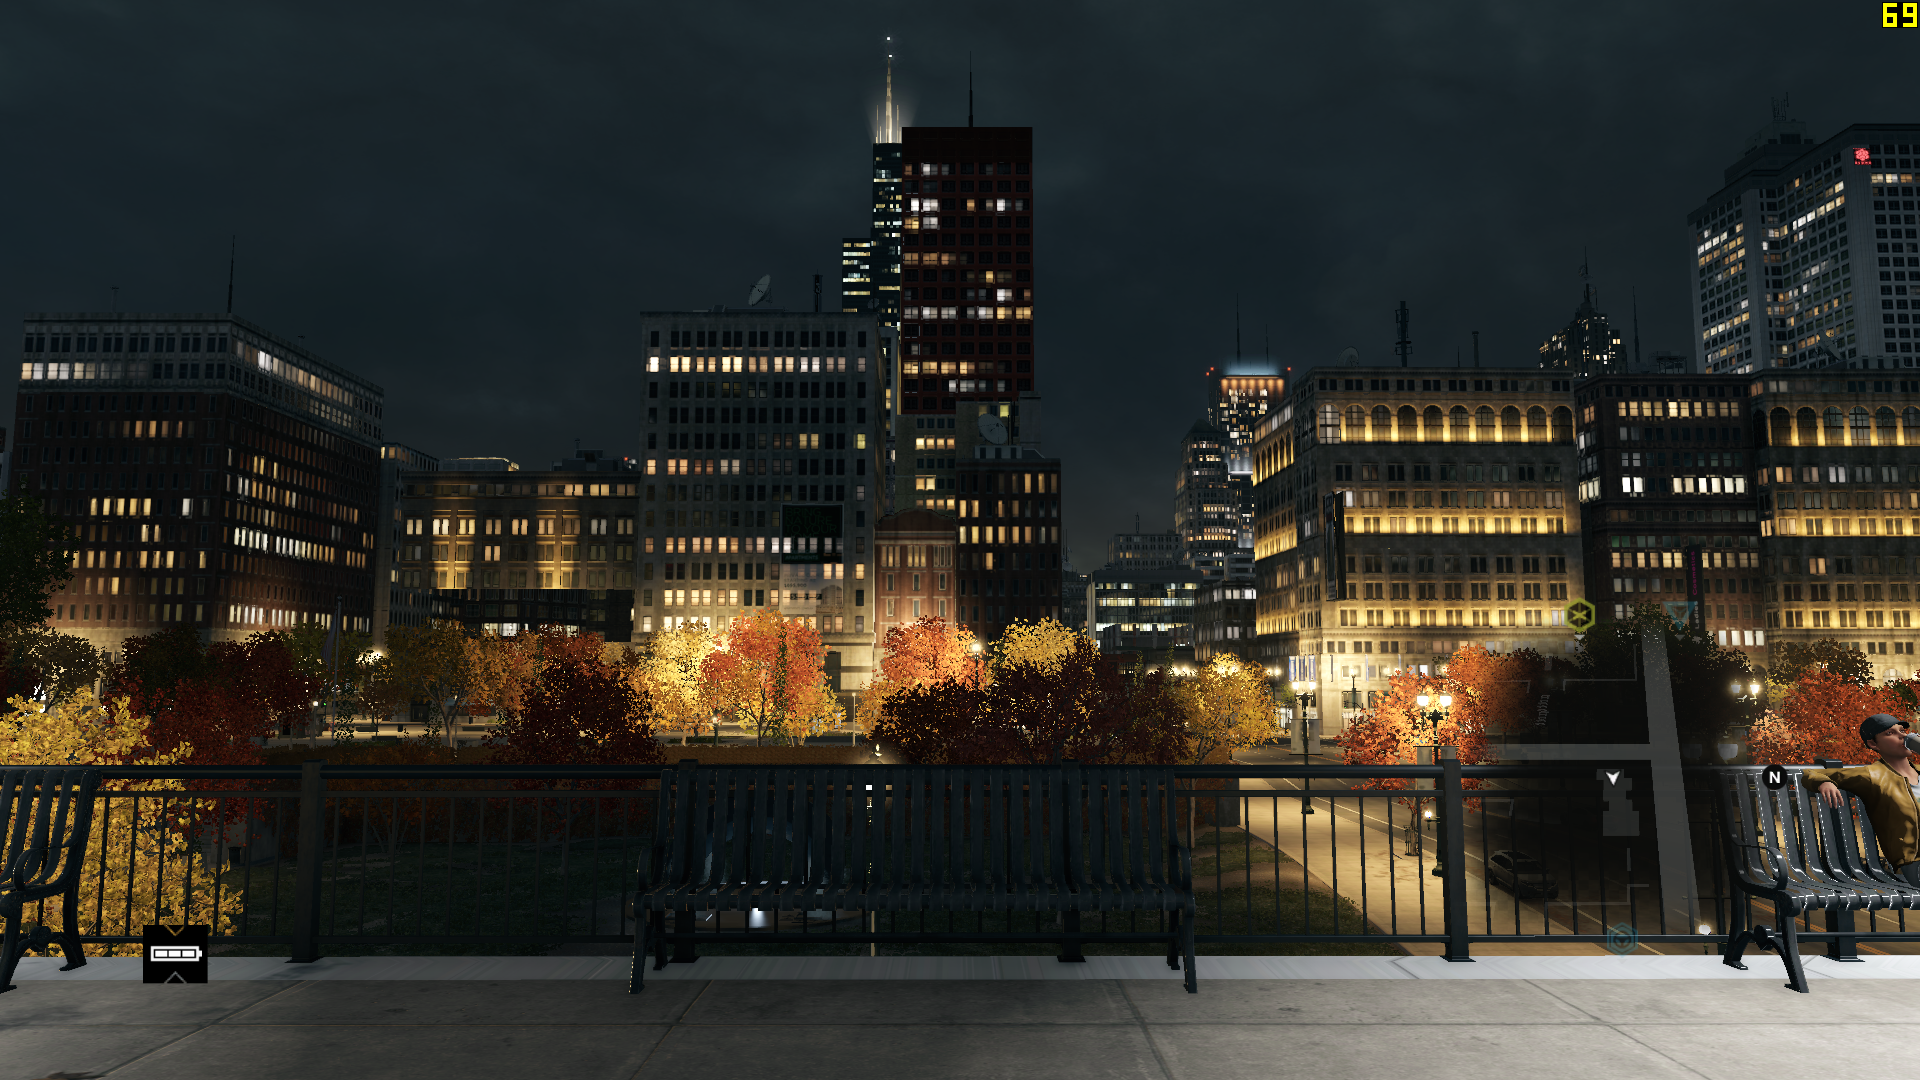 watch_dogs--0062bqj1.png